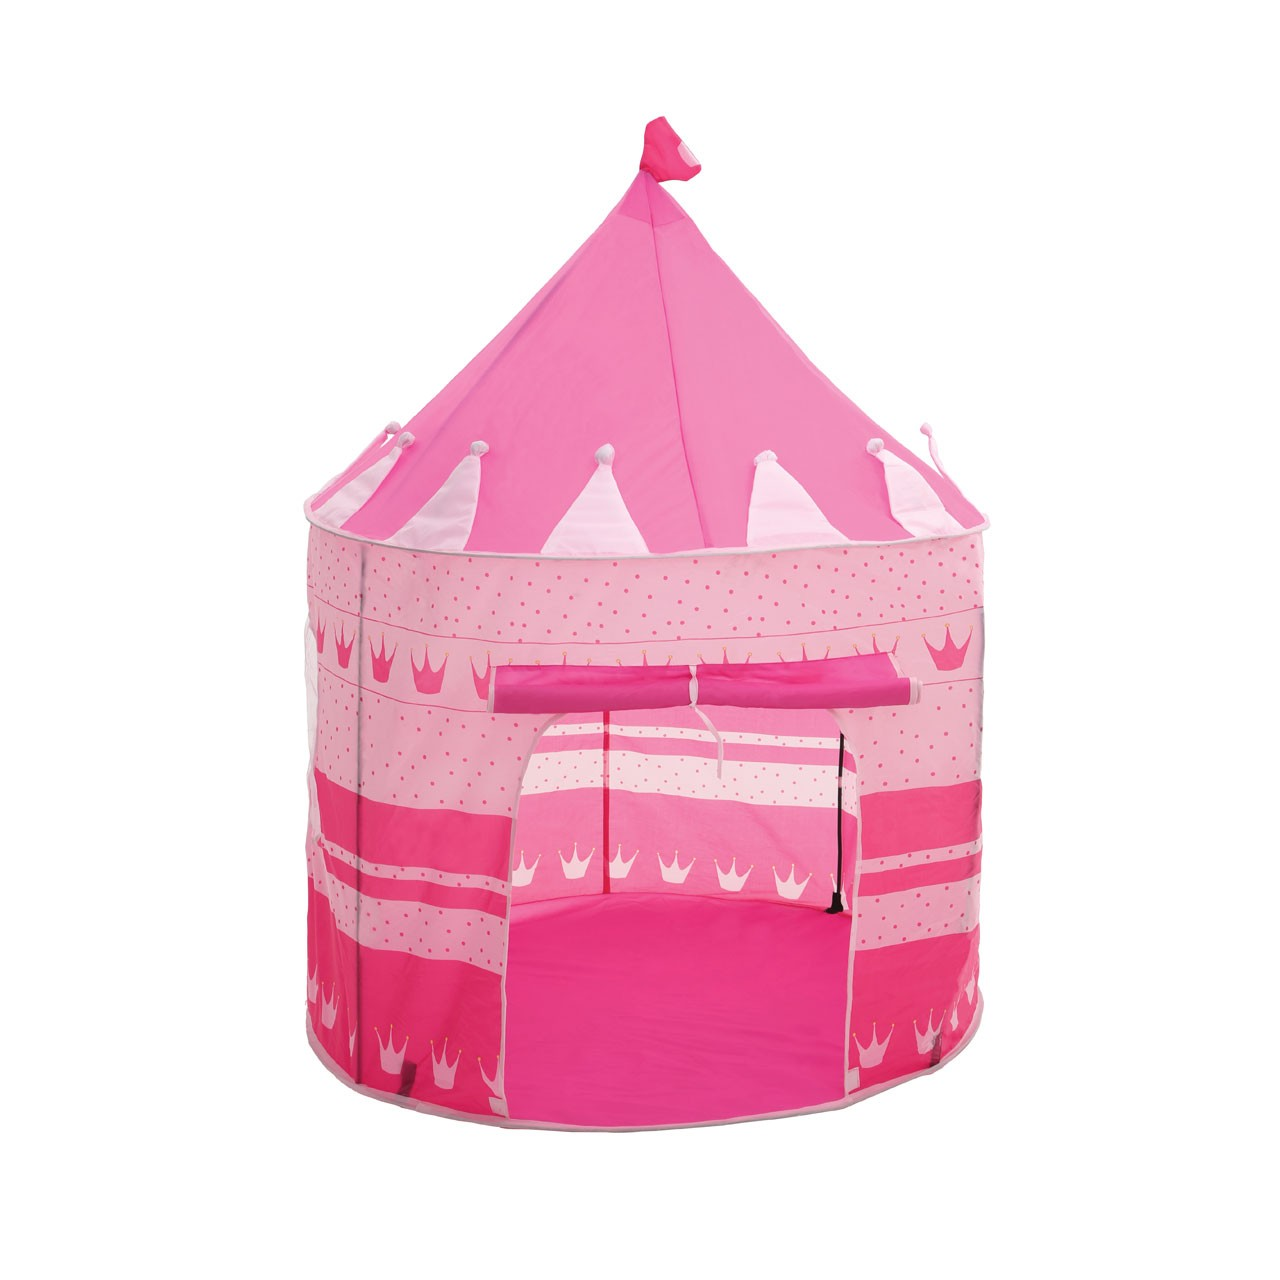 Children's Castle Play Tent (Pink)